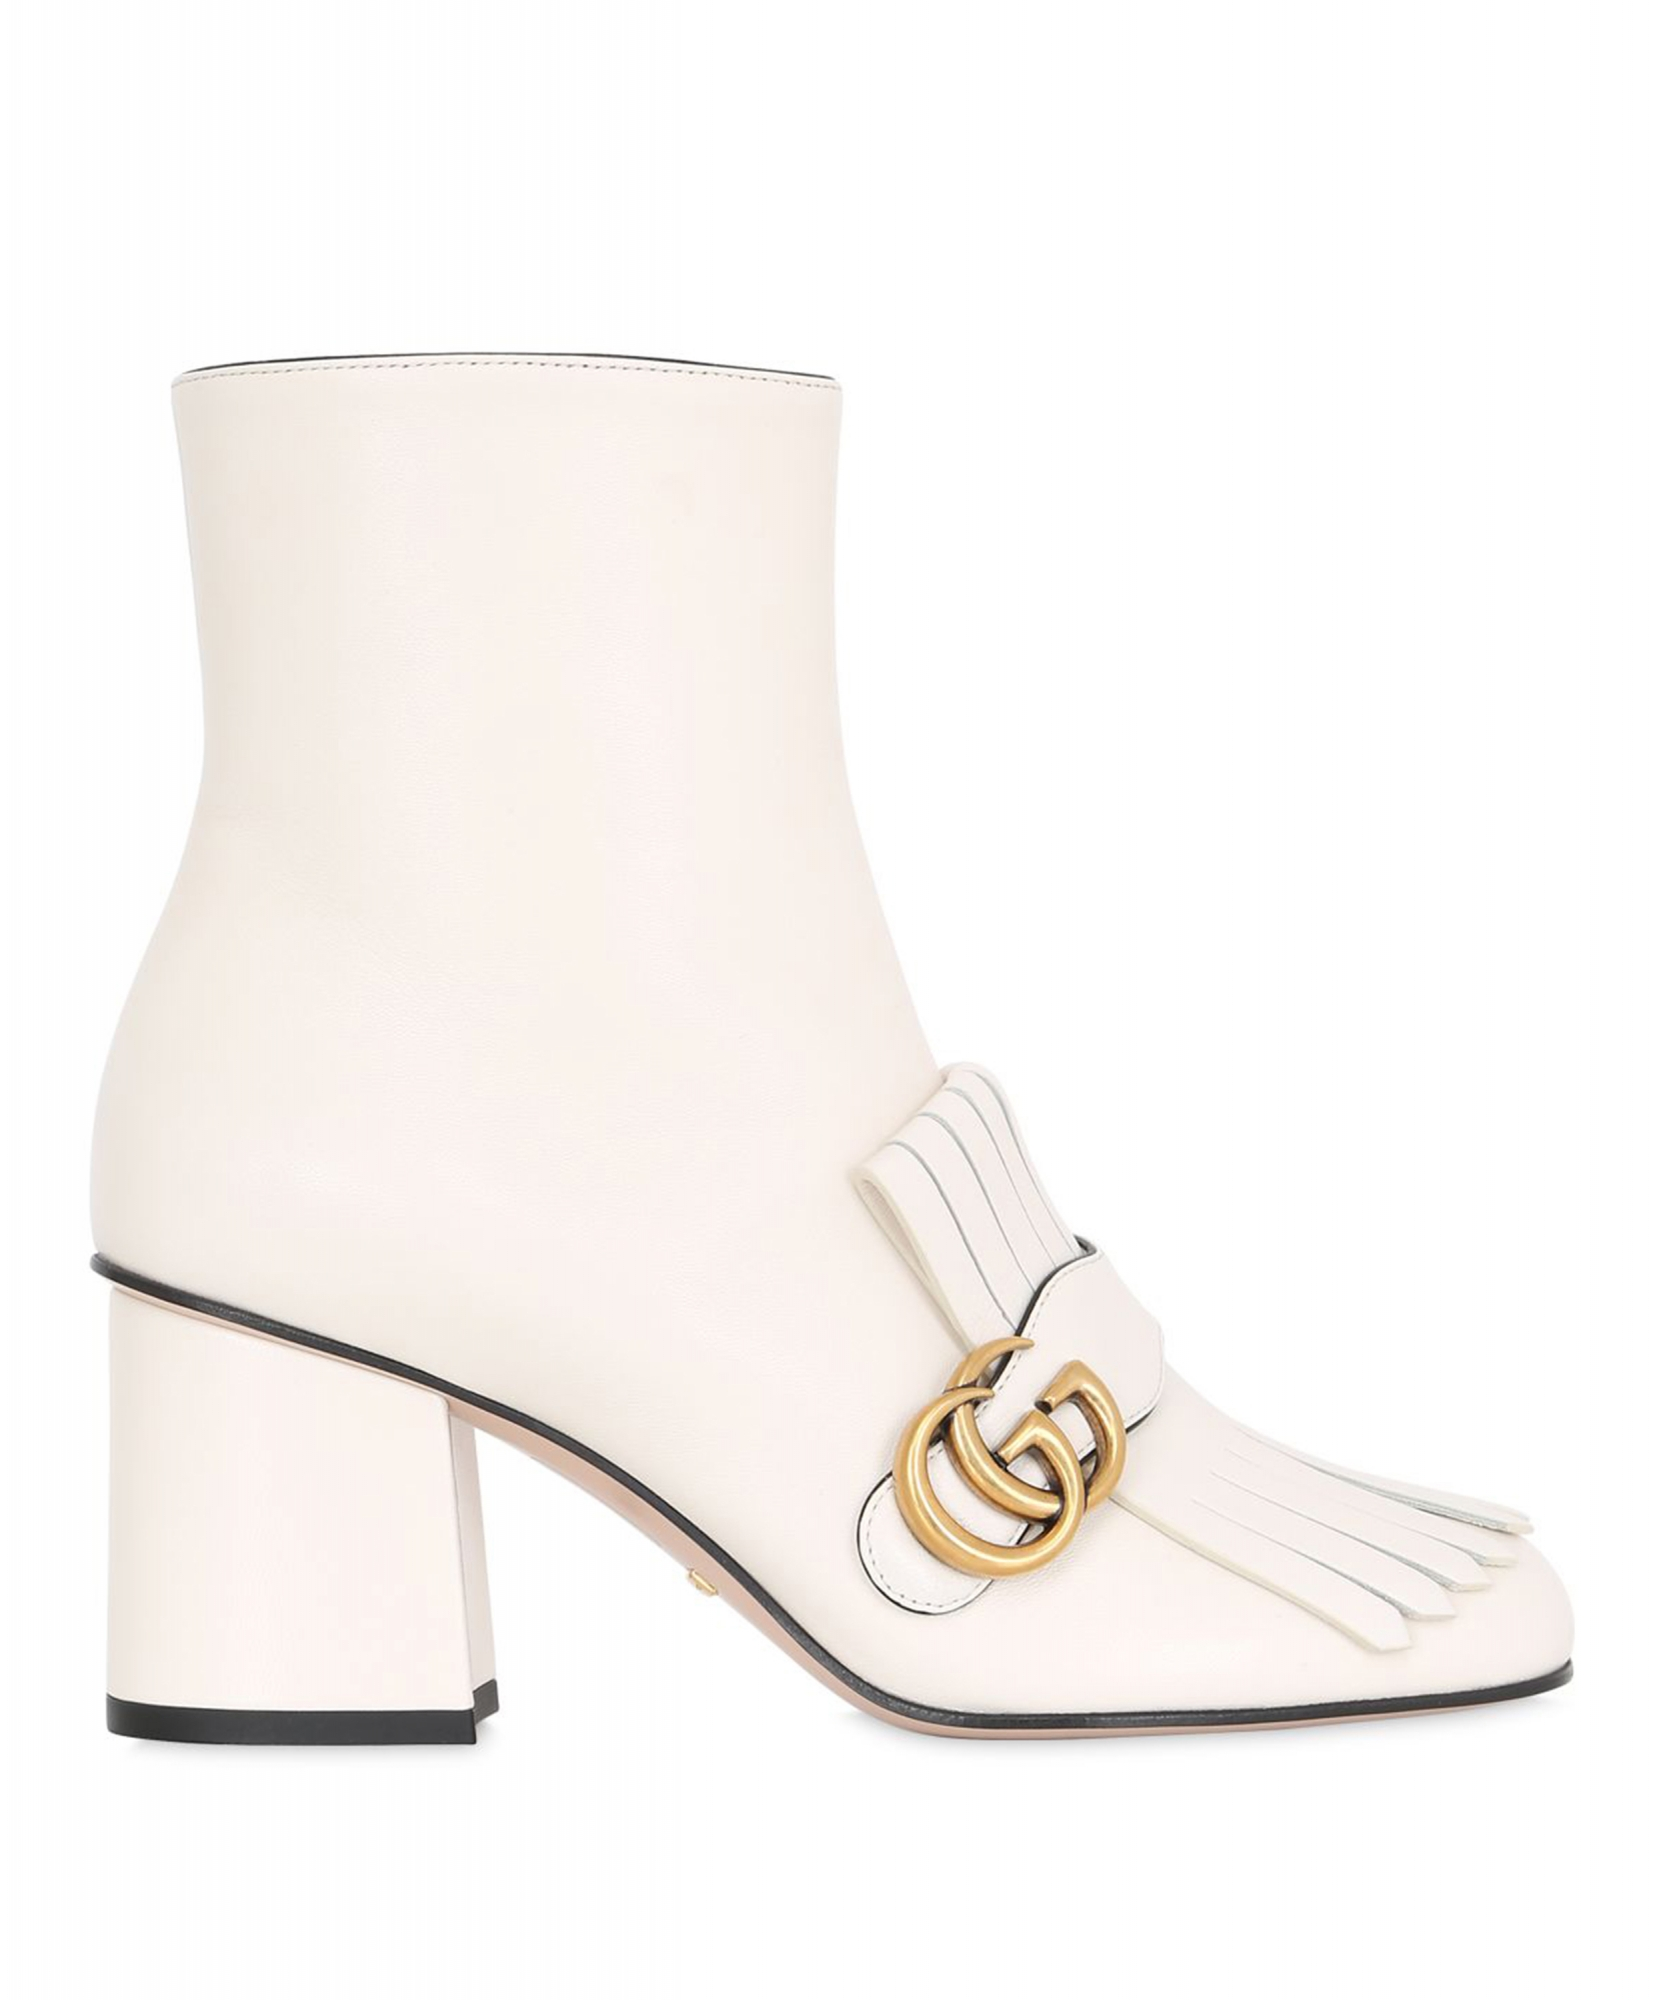 9f85d88e567 Gucci White Marmont Fringed Leather Ankle Boots ...